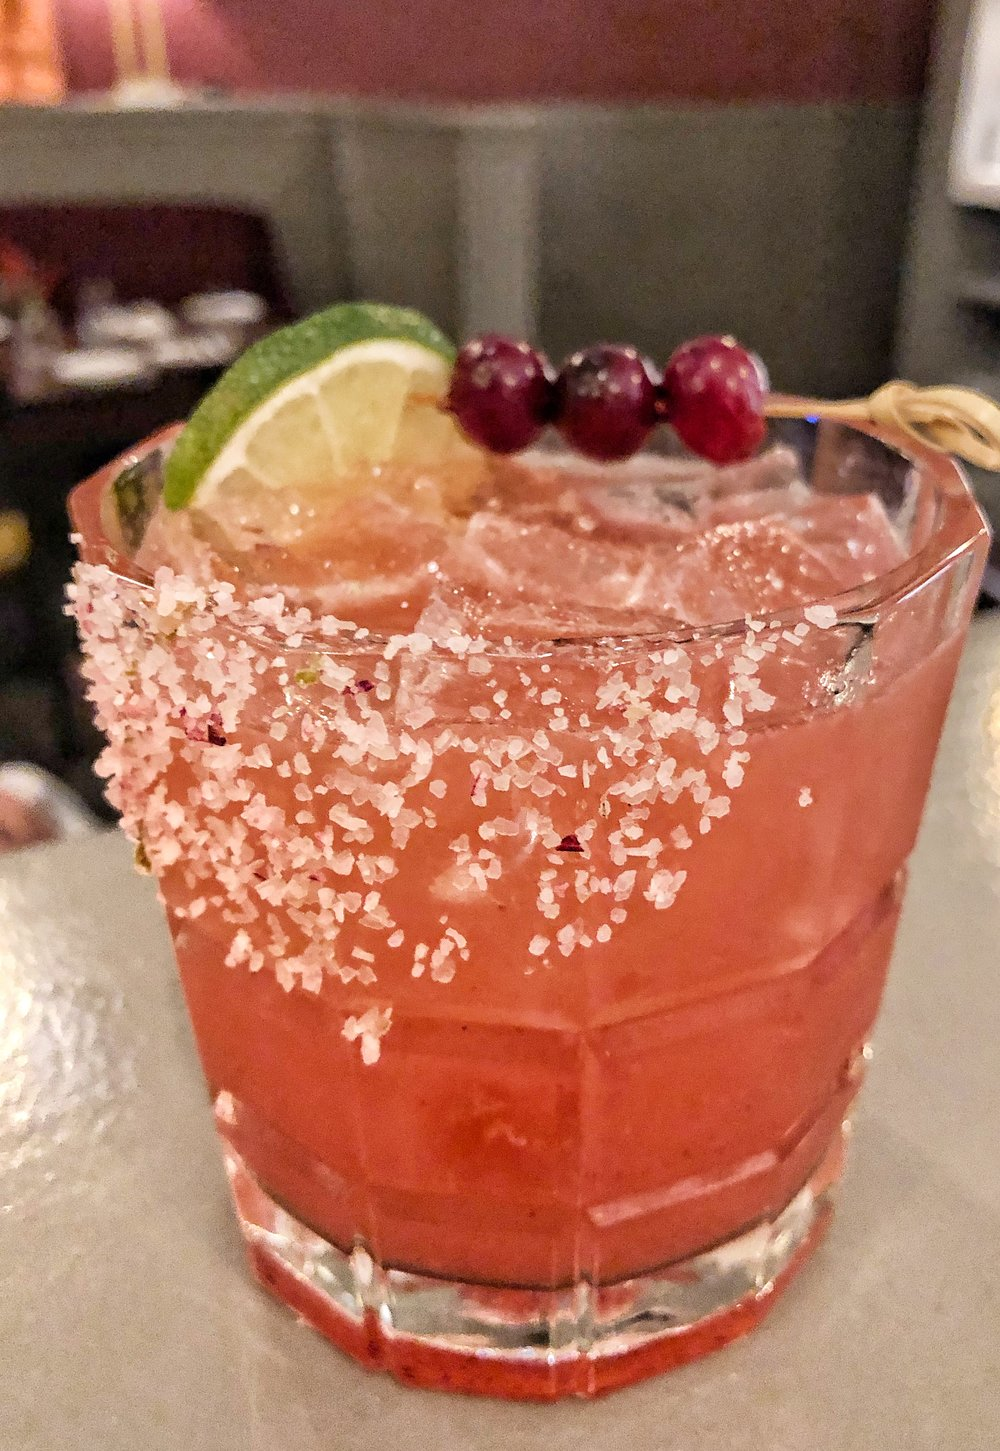 Queen City Duchess - Casamigos Reposado, cranberry cordial, Cocchi Americano Apertif, limeI could have had four of these, and the one I did have went down in five minutes flat. Casamigos tequila is the greatest thing George Clooney ever put his beautiful hands on. Also, can I be the Queen City Duchess? Please?